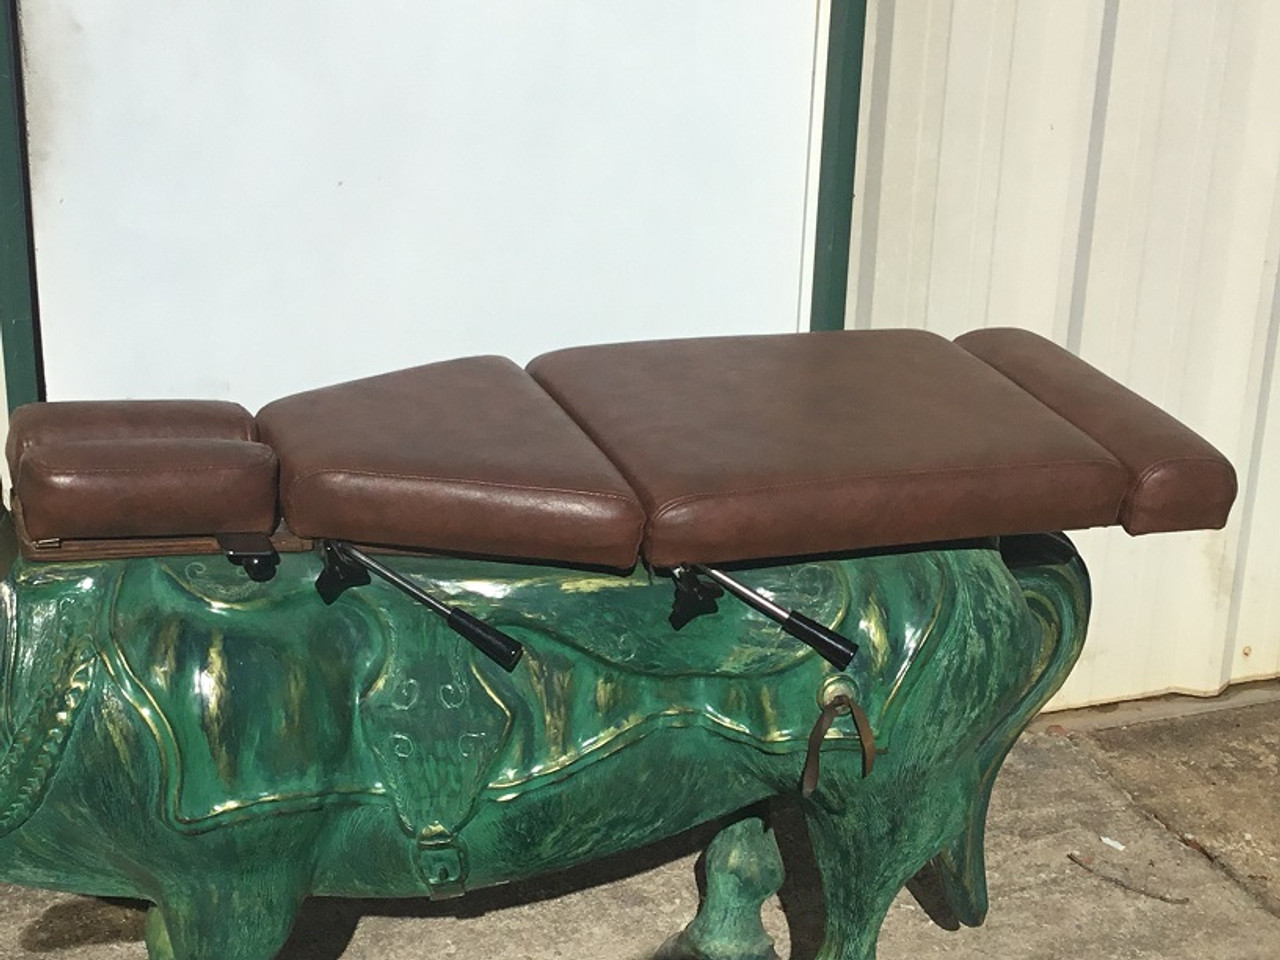 Used LLoyd Carousel Pony Pediatric Table with 4 Drops